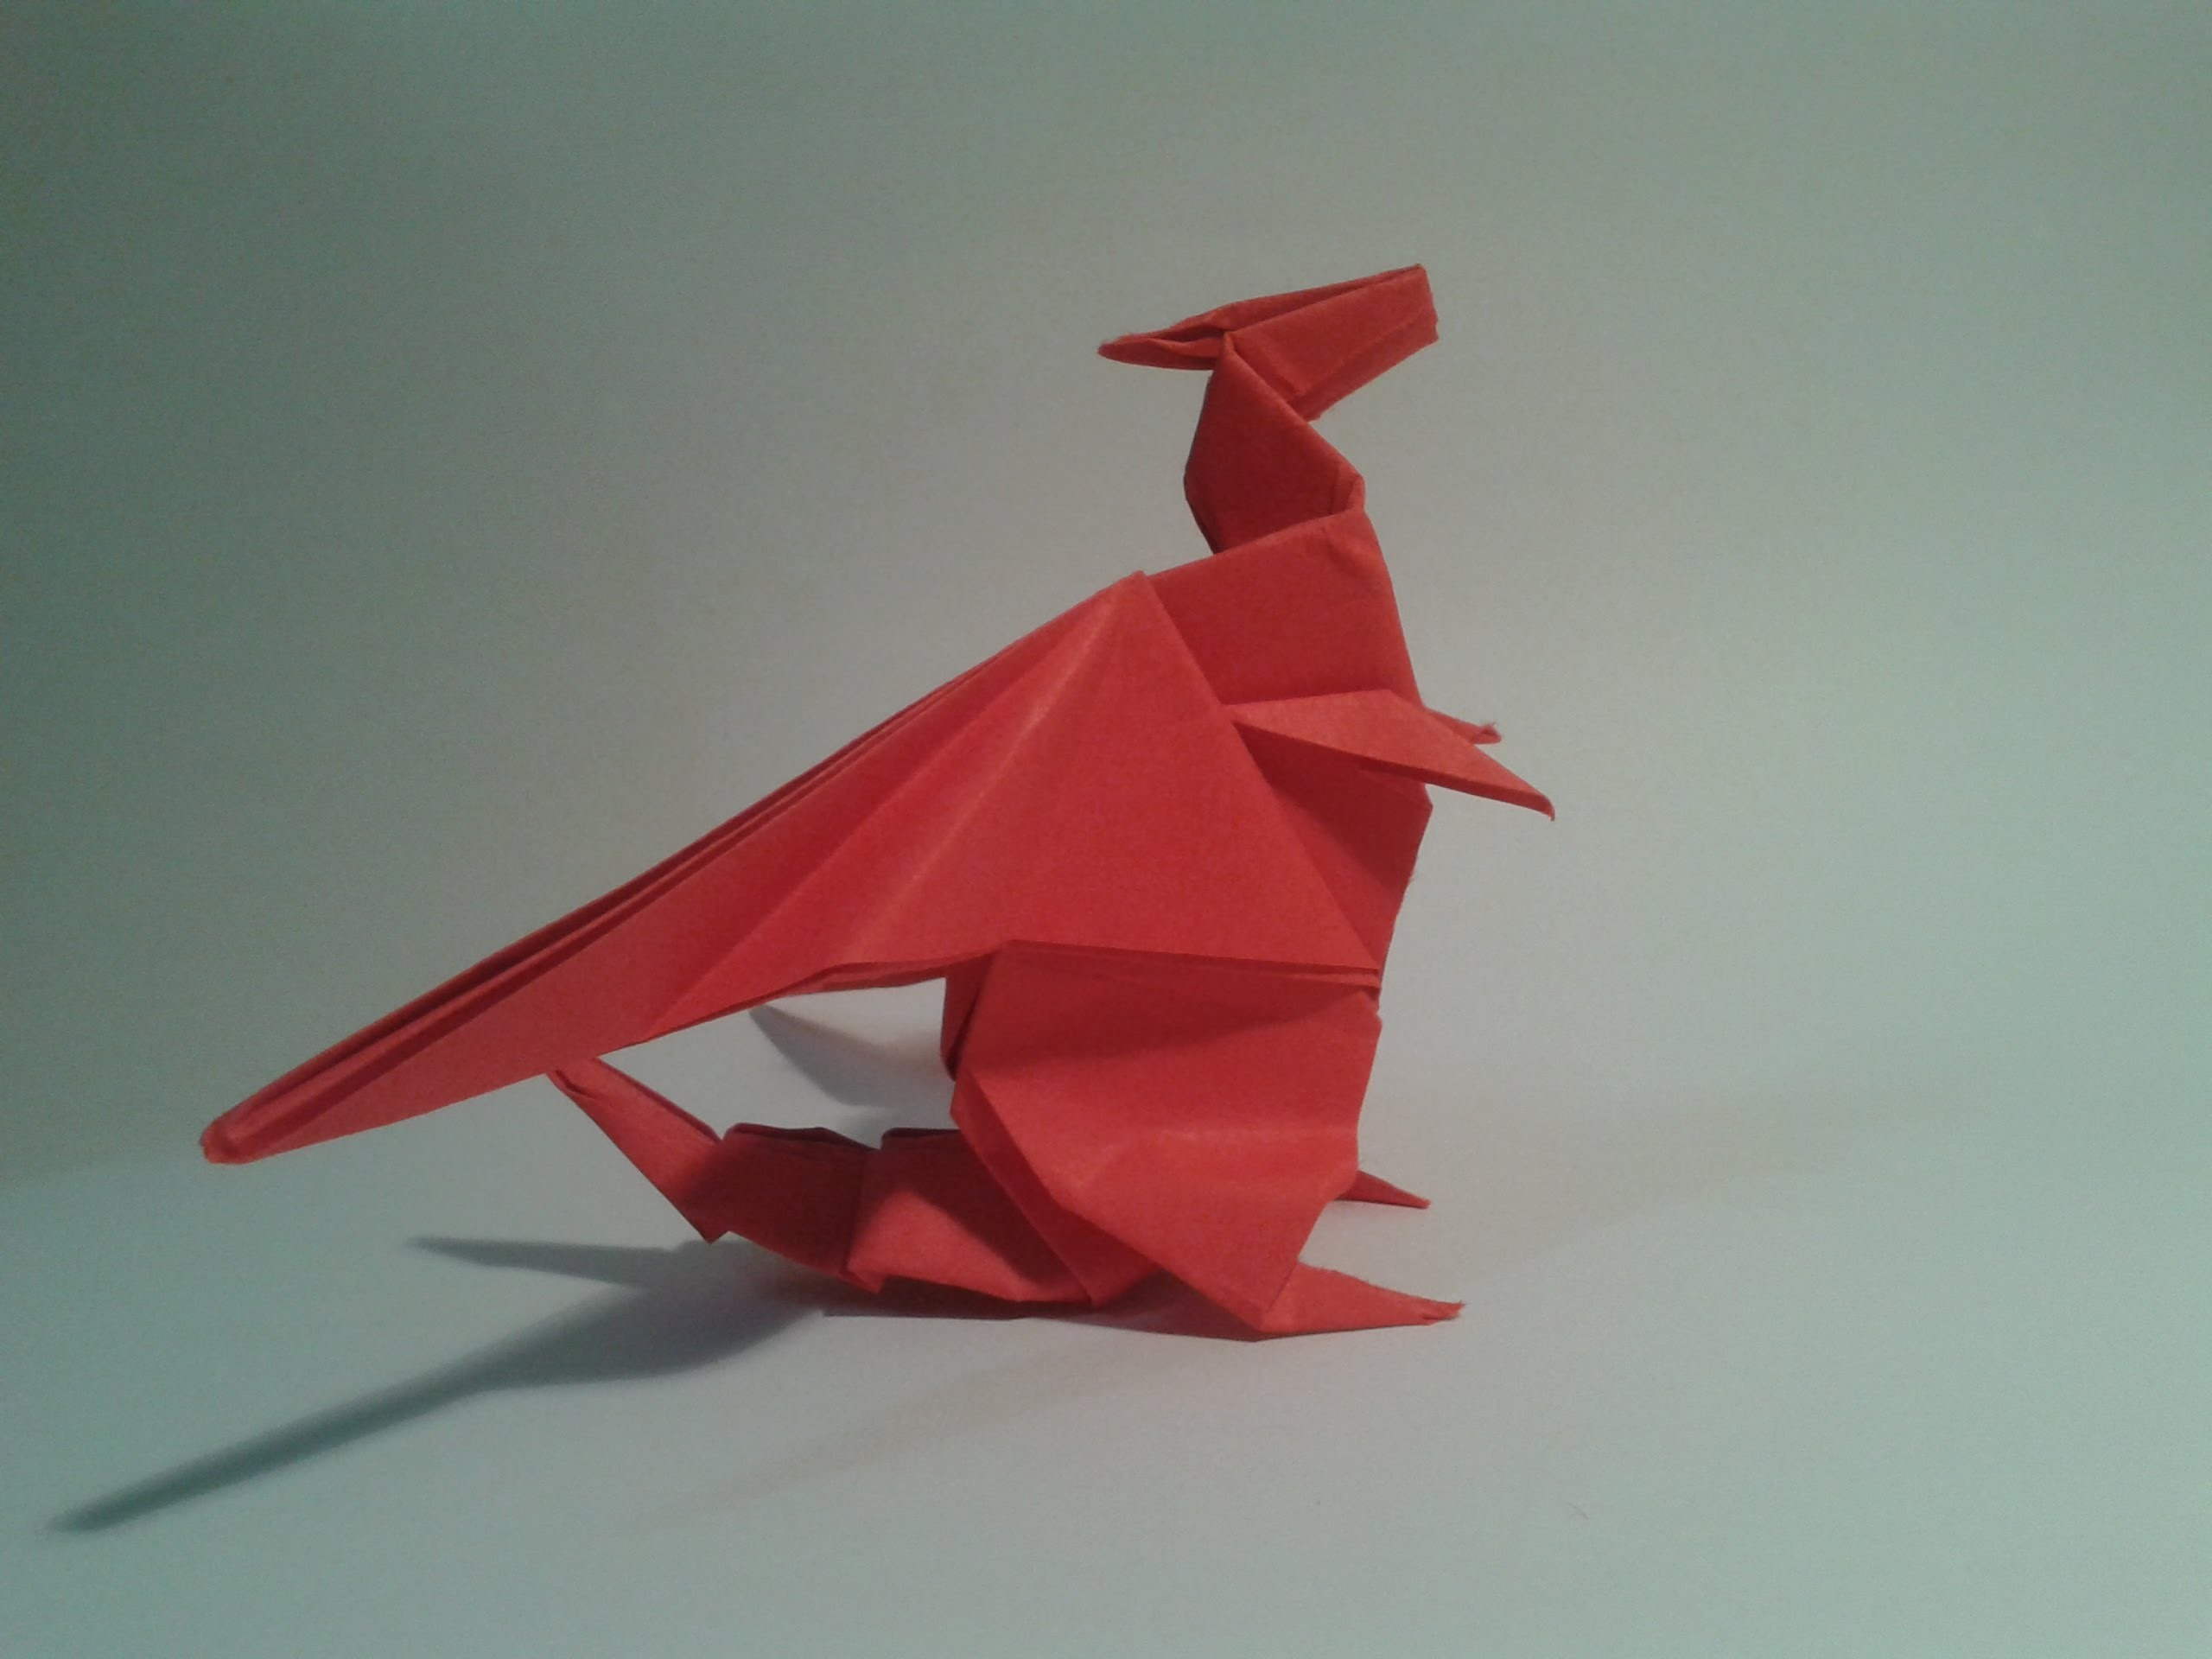 Origami - How to make a dragon (Gilad Aharoni)